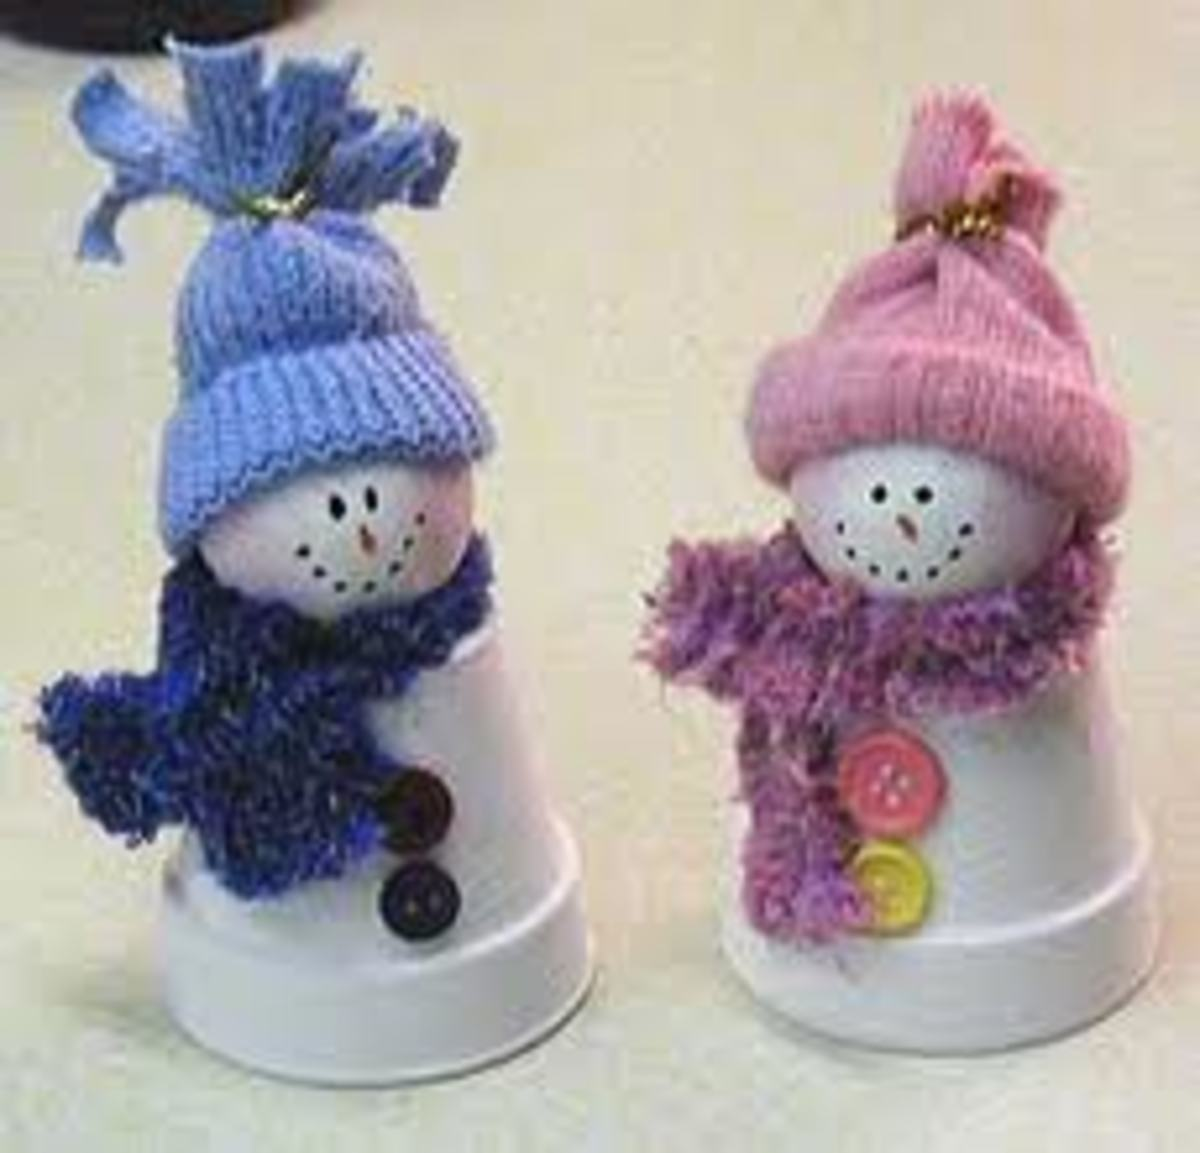 FLOWER-POT SNOWFOLK WITH STYROFOAM BALL HEADS!  MIXED MEDIA - ADDING MATERIAL AND BUTTONS